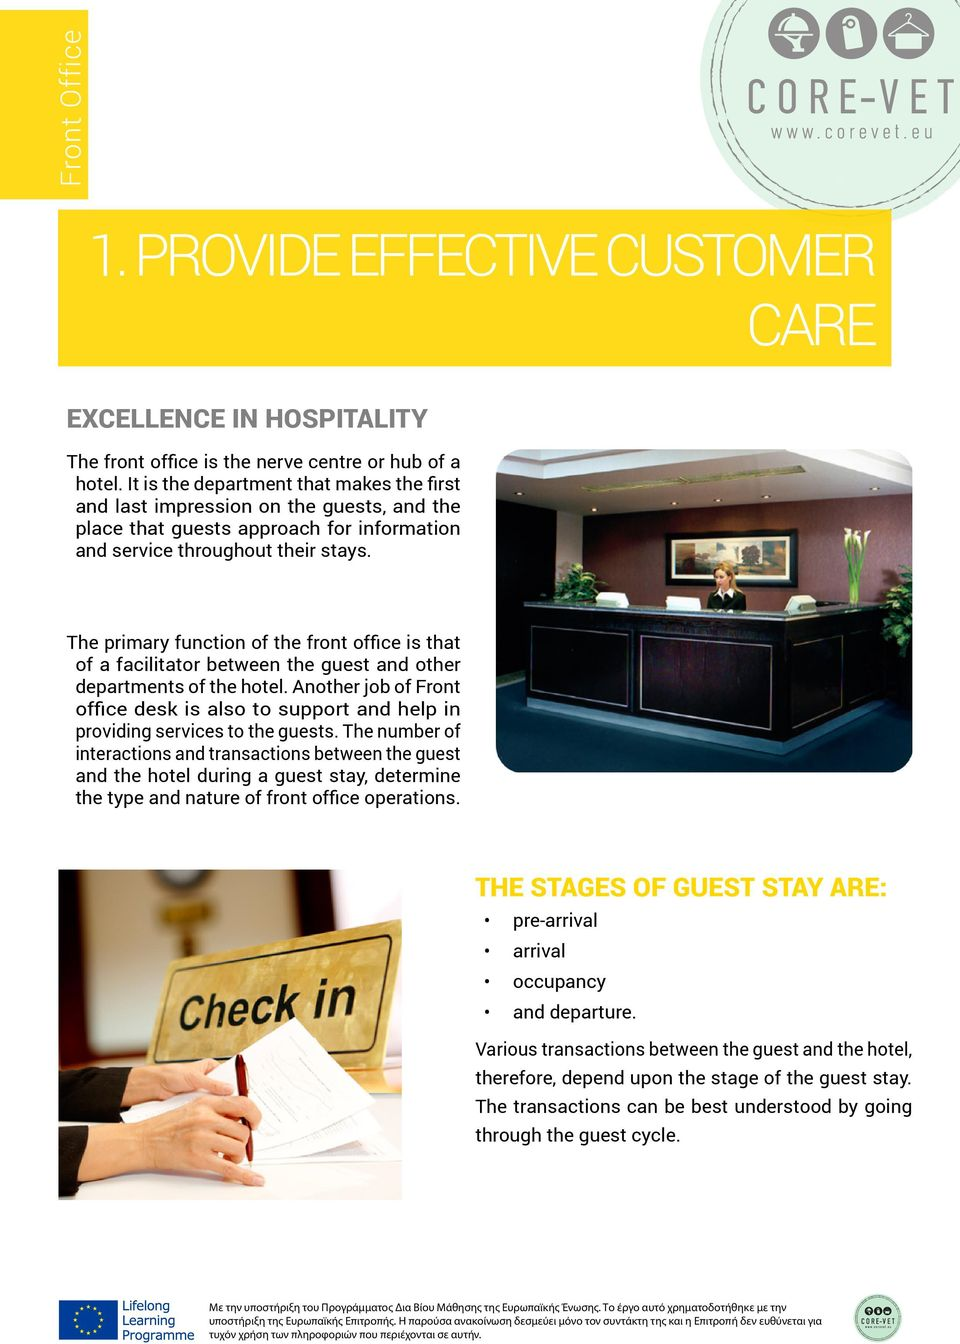 The primary function of the front office is that of a facilitator between the guest and other departments of the hotel.